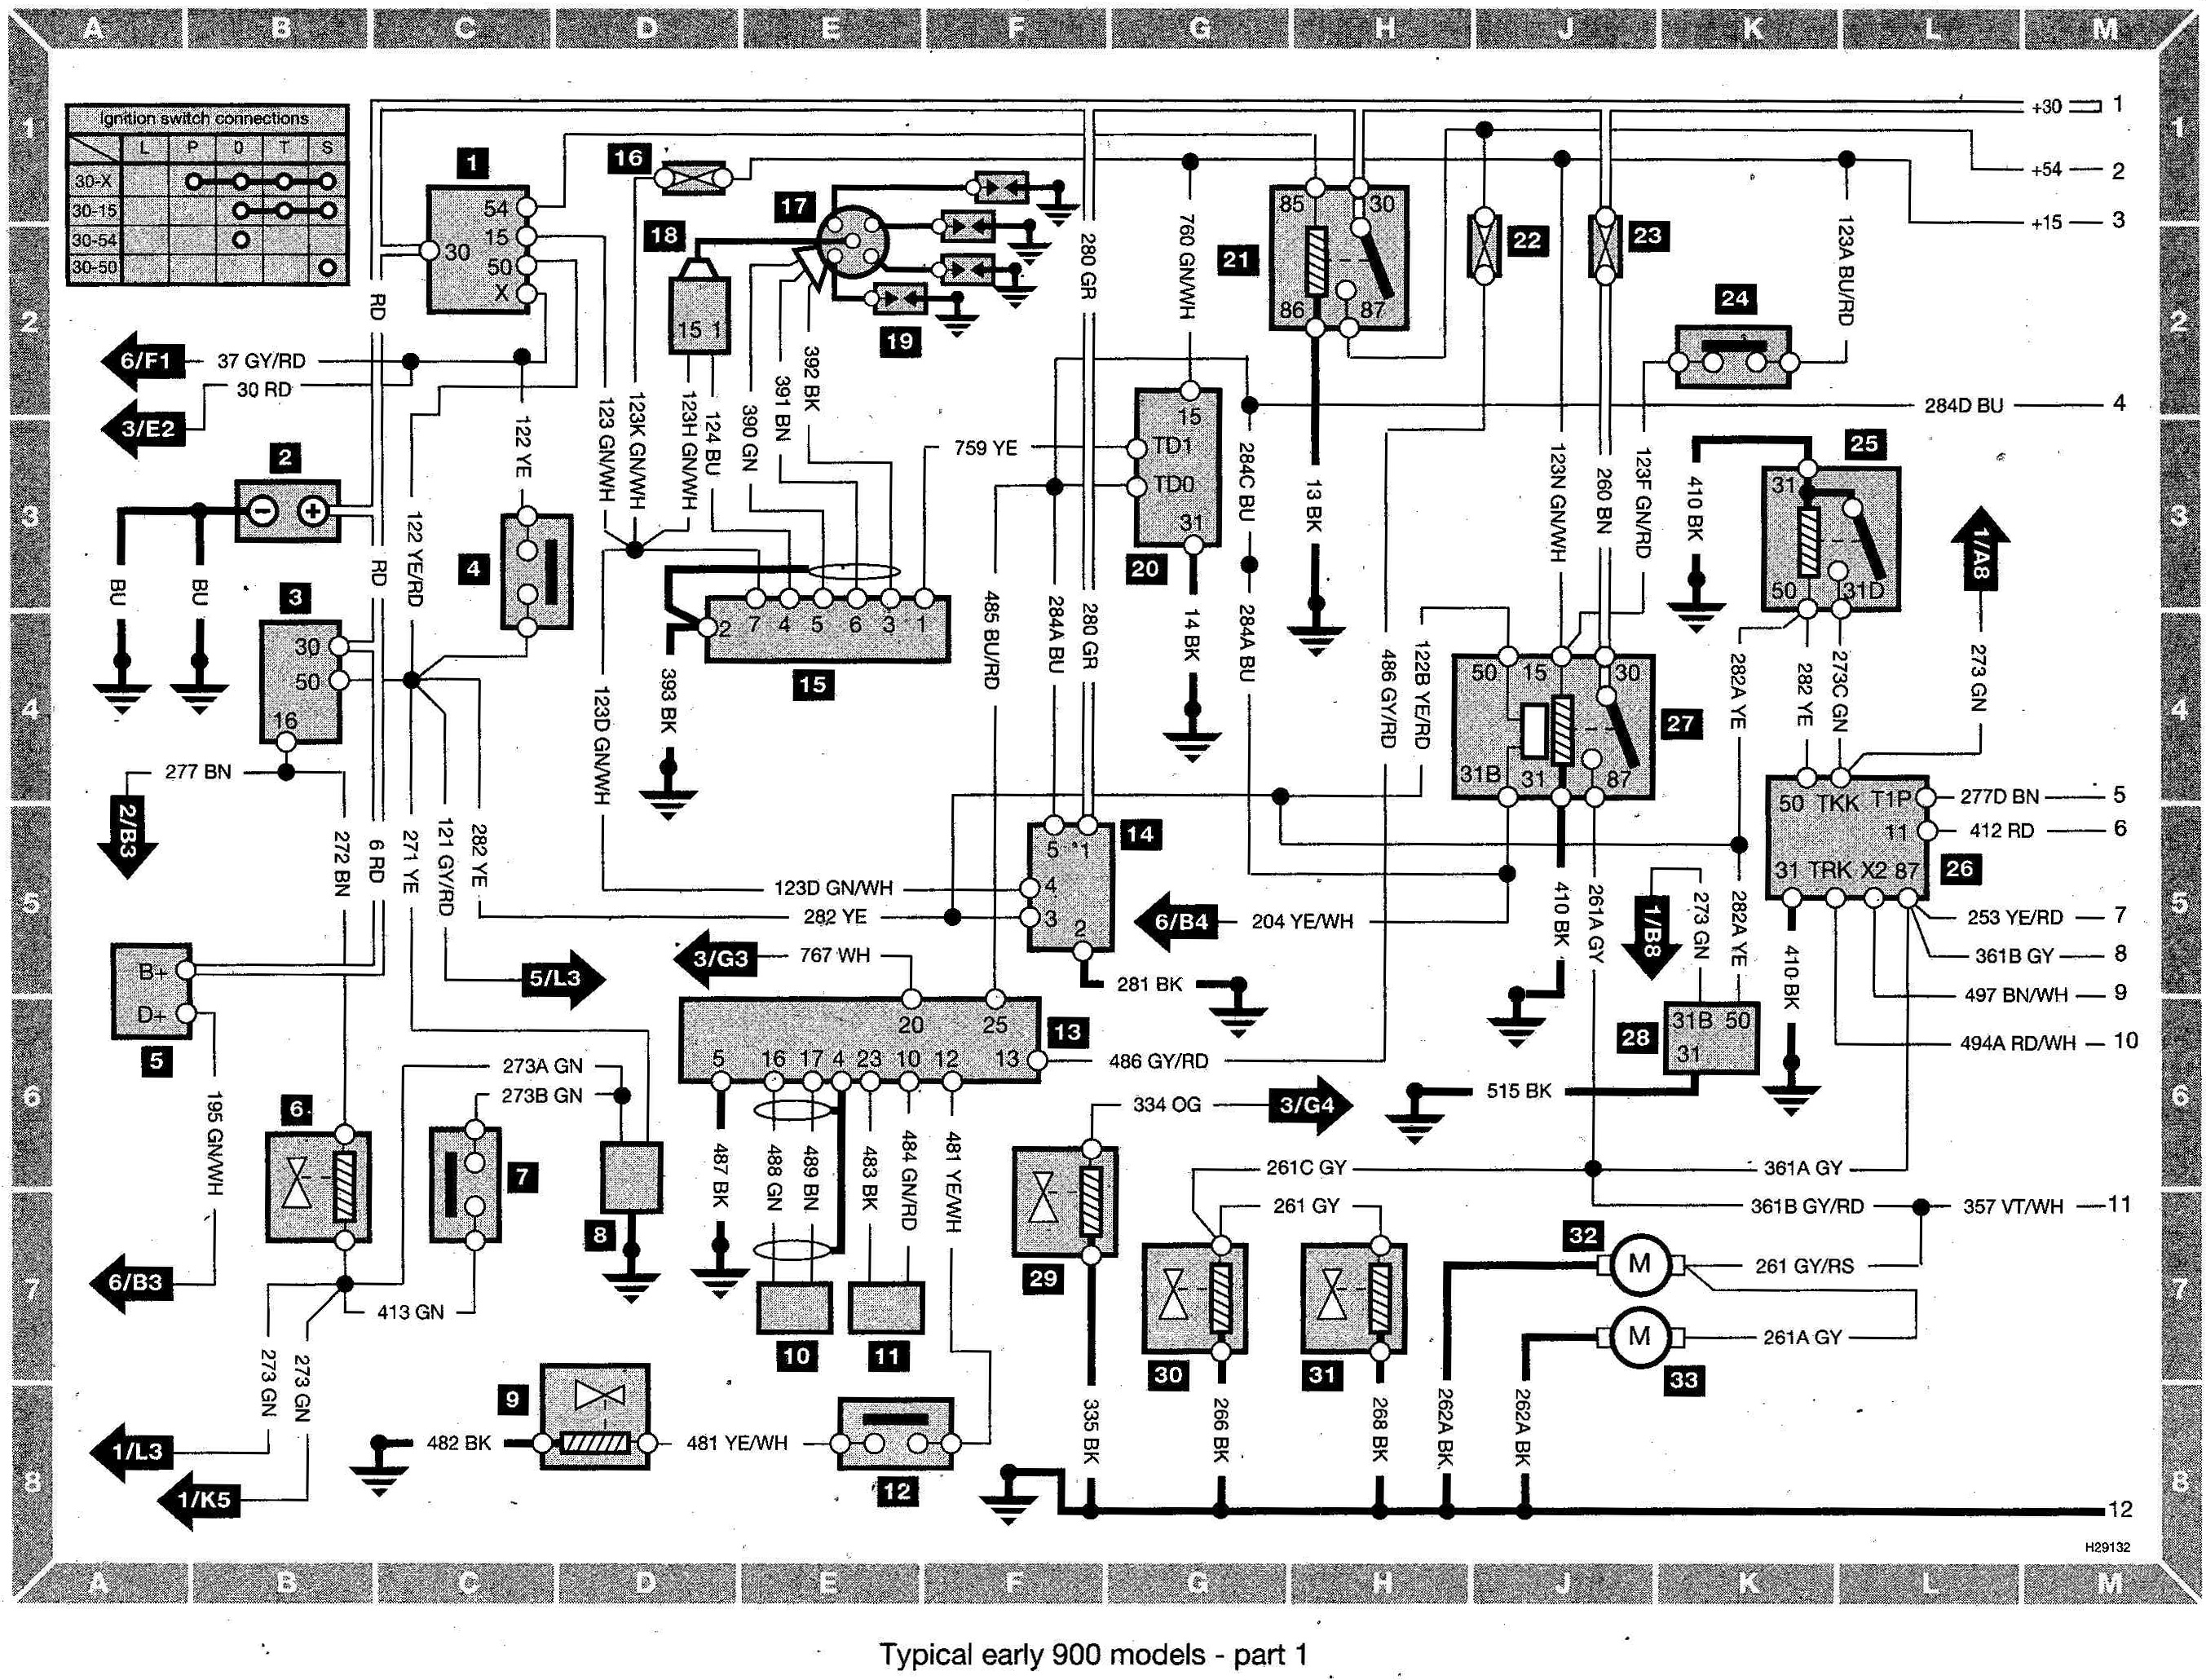 saab headlight wiring experts of wiring diagram u2022 rh evilcloud co uk 2002  saab 9-3 headlight wiring diagram saab 9-3 headlight wiring diagram